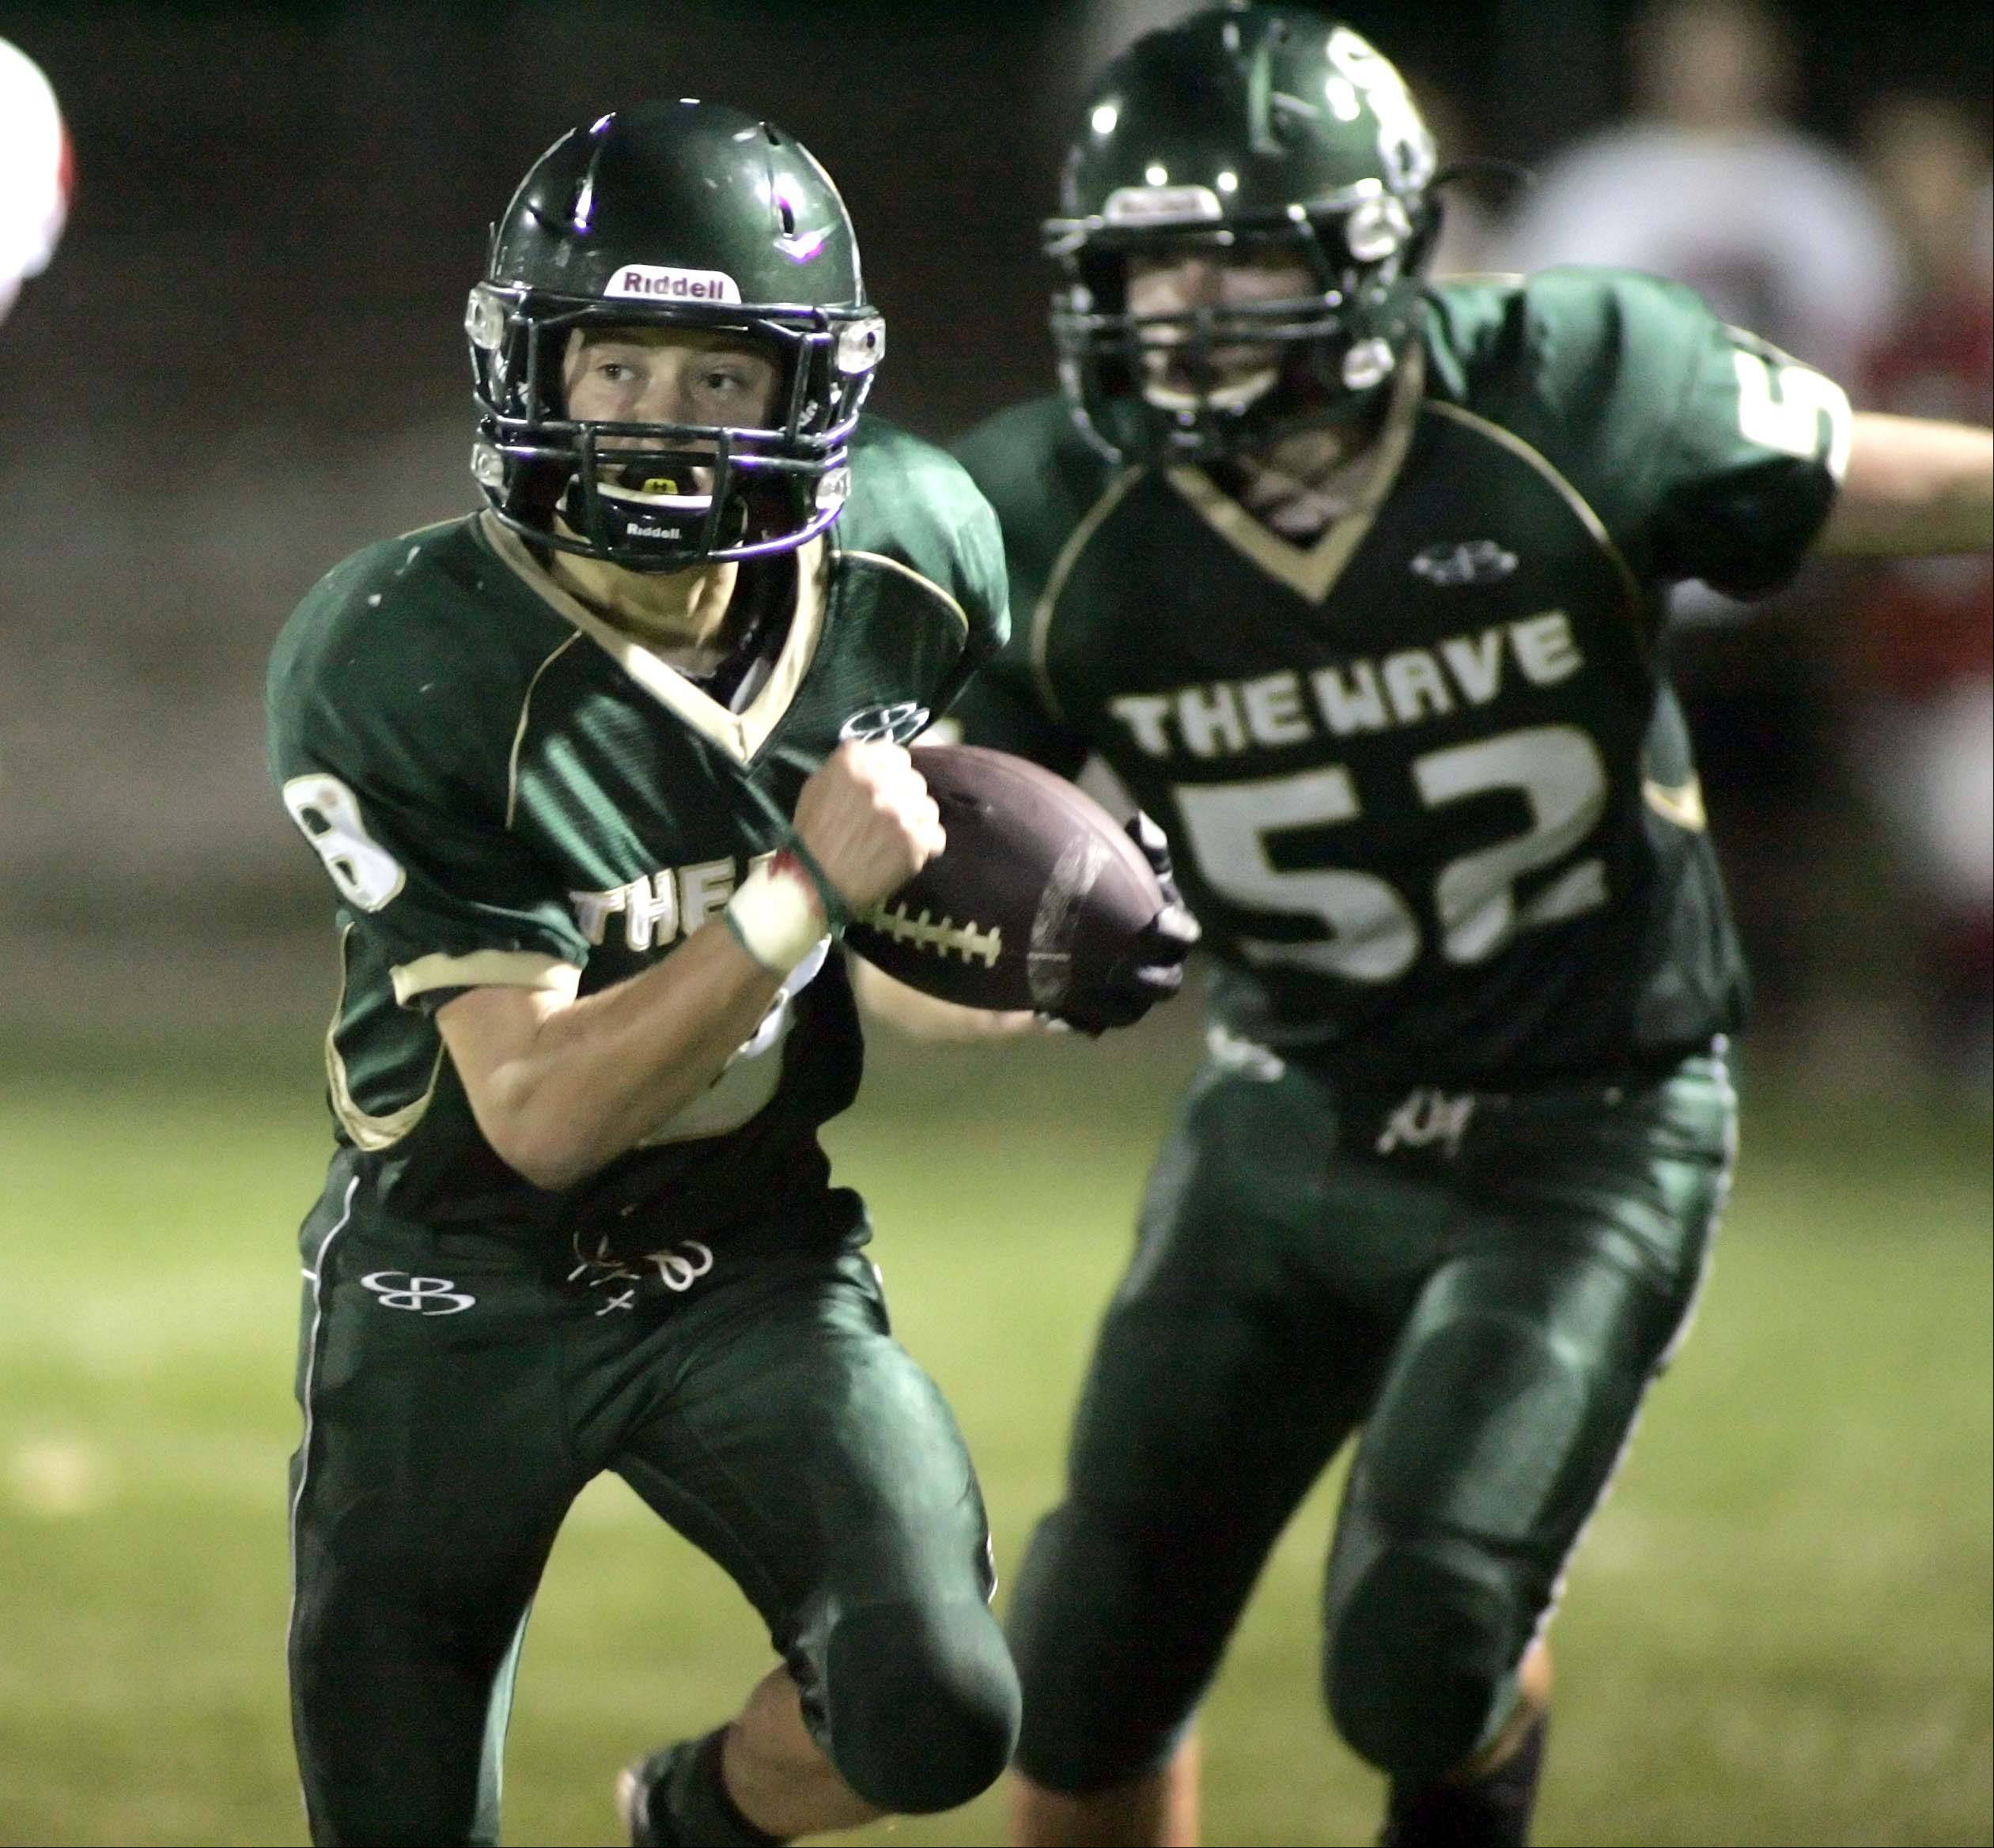 St. Edward's Mikey Castoro moves upfield after pulling in an interception in the second quarter .